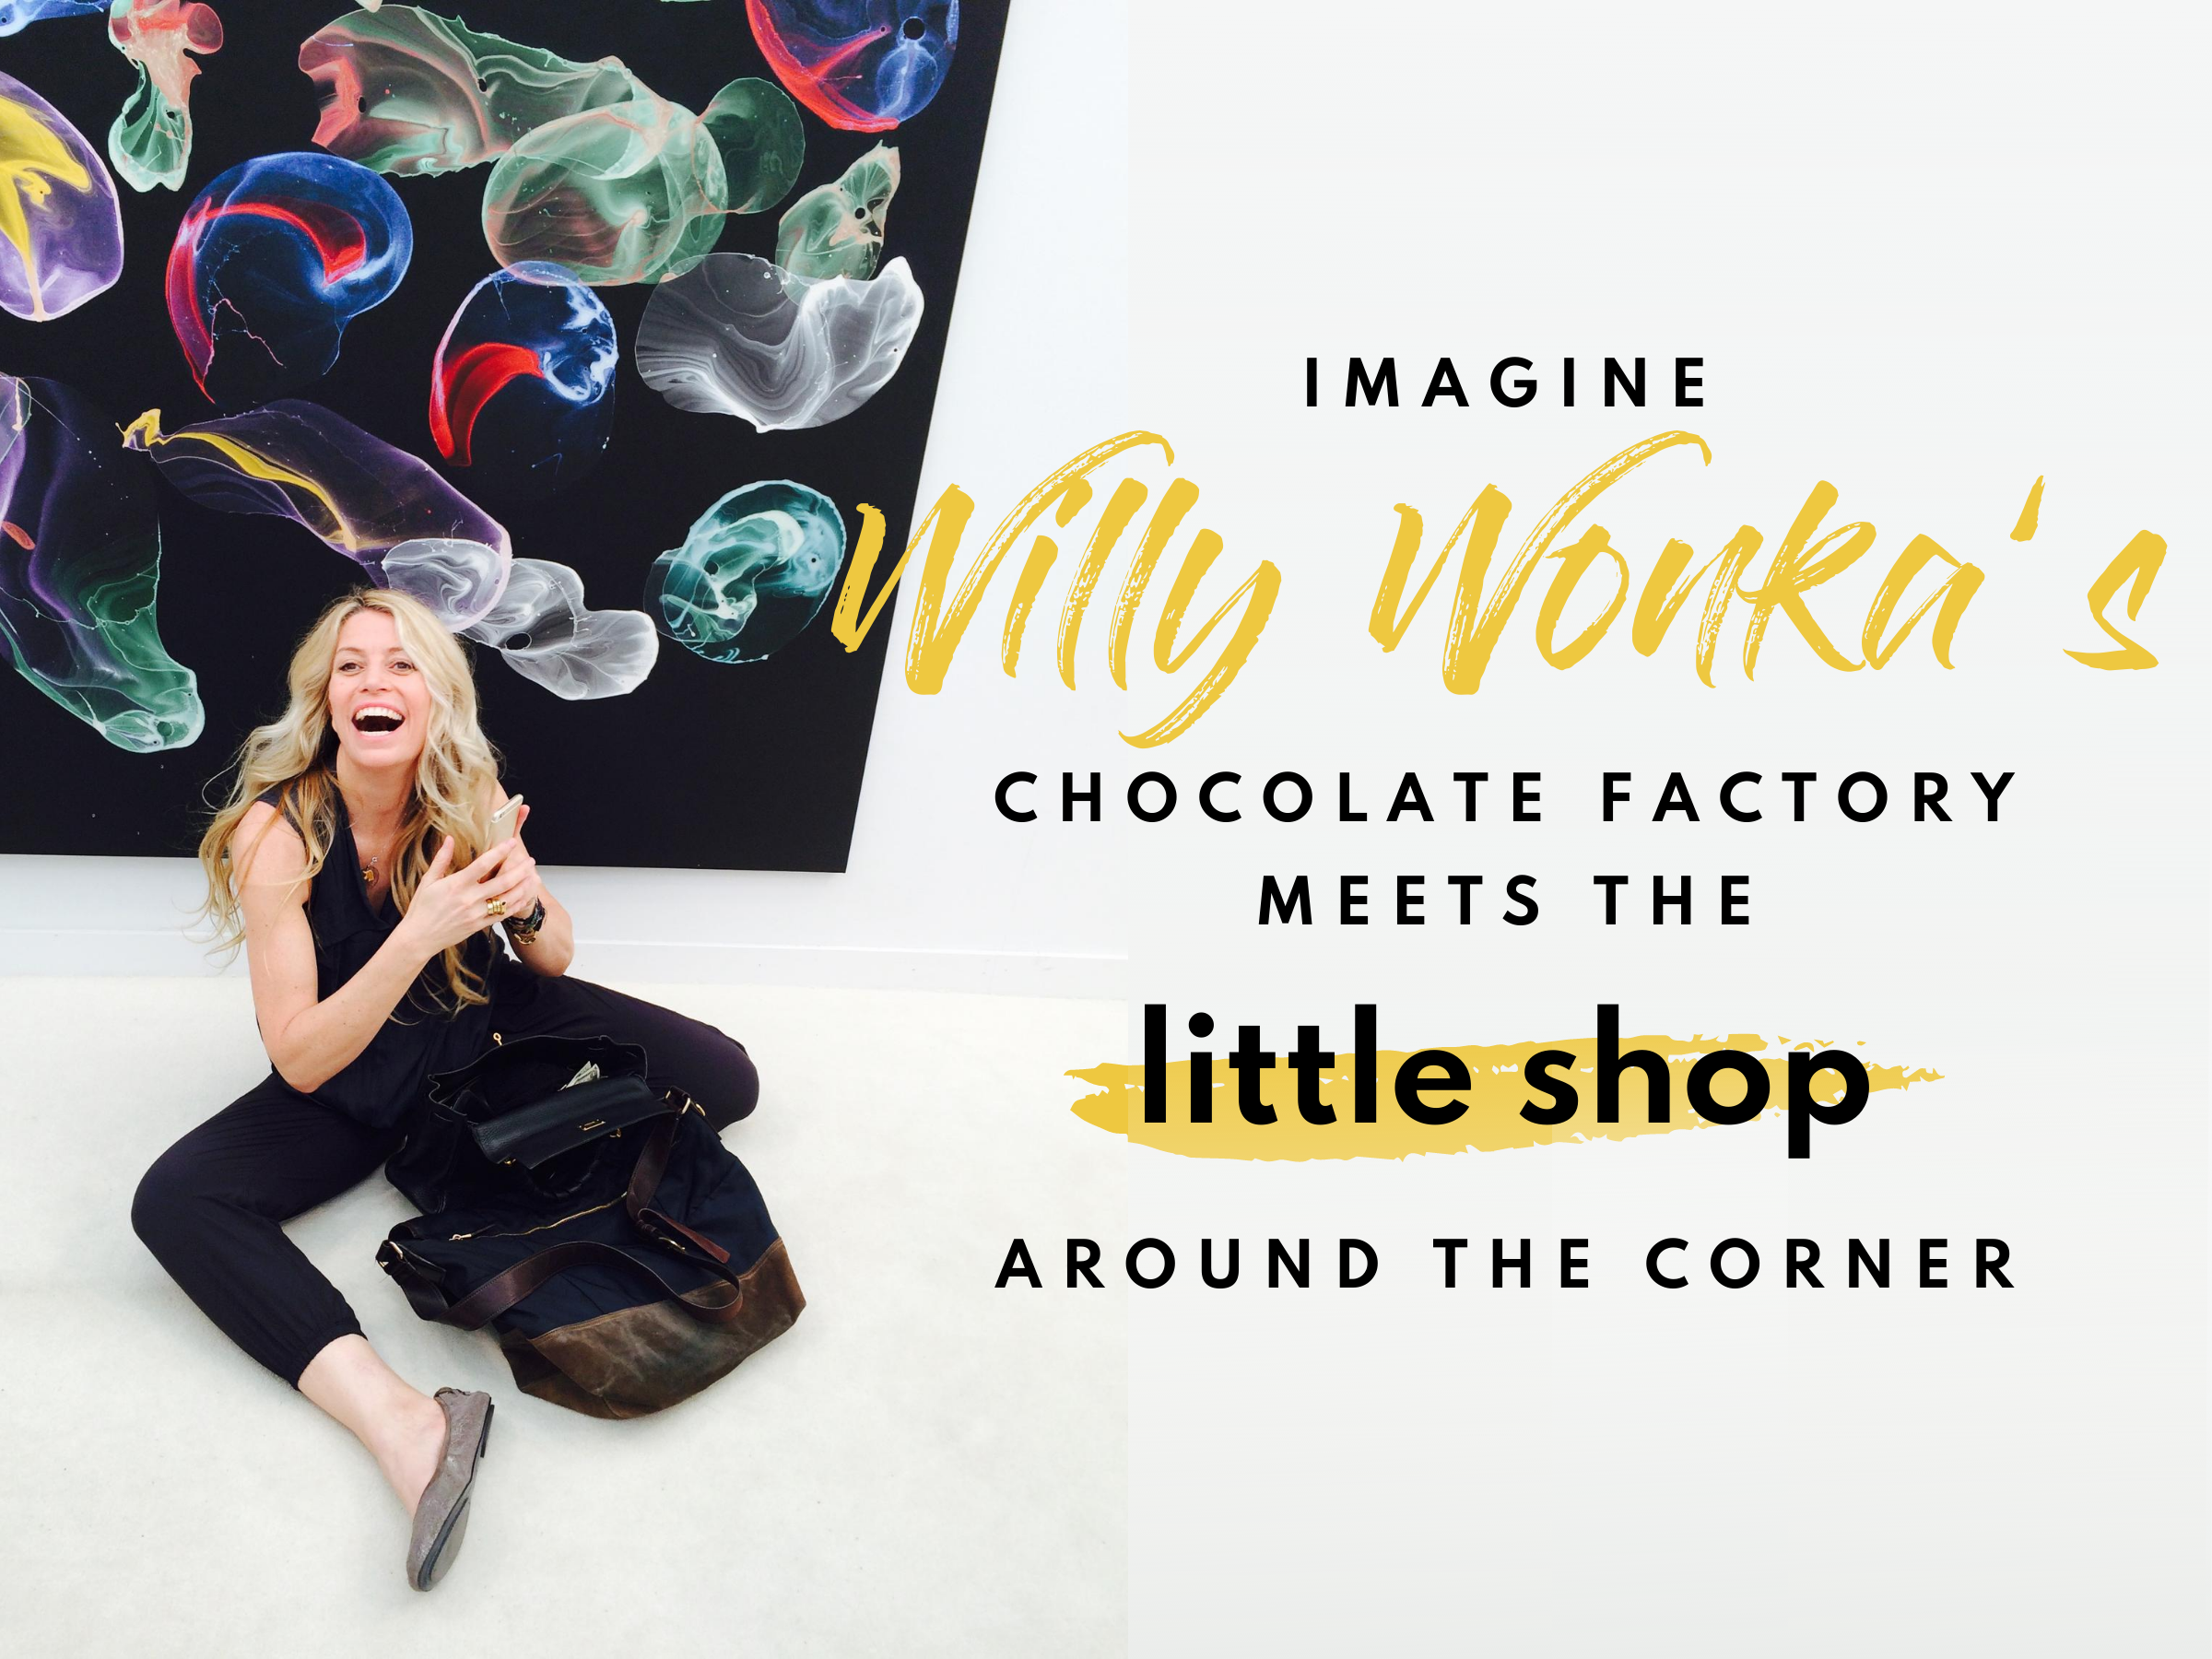 Imagine Willy Wonka's Chocolate Factory meets the little shop around the corner